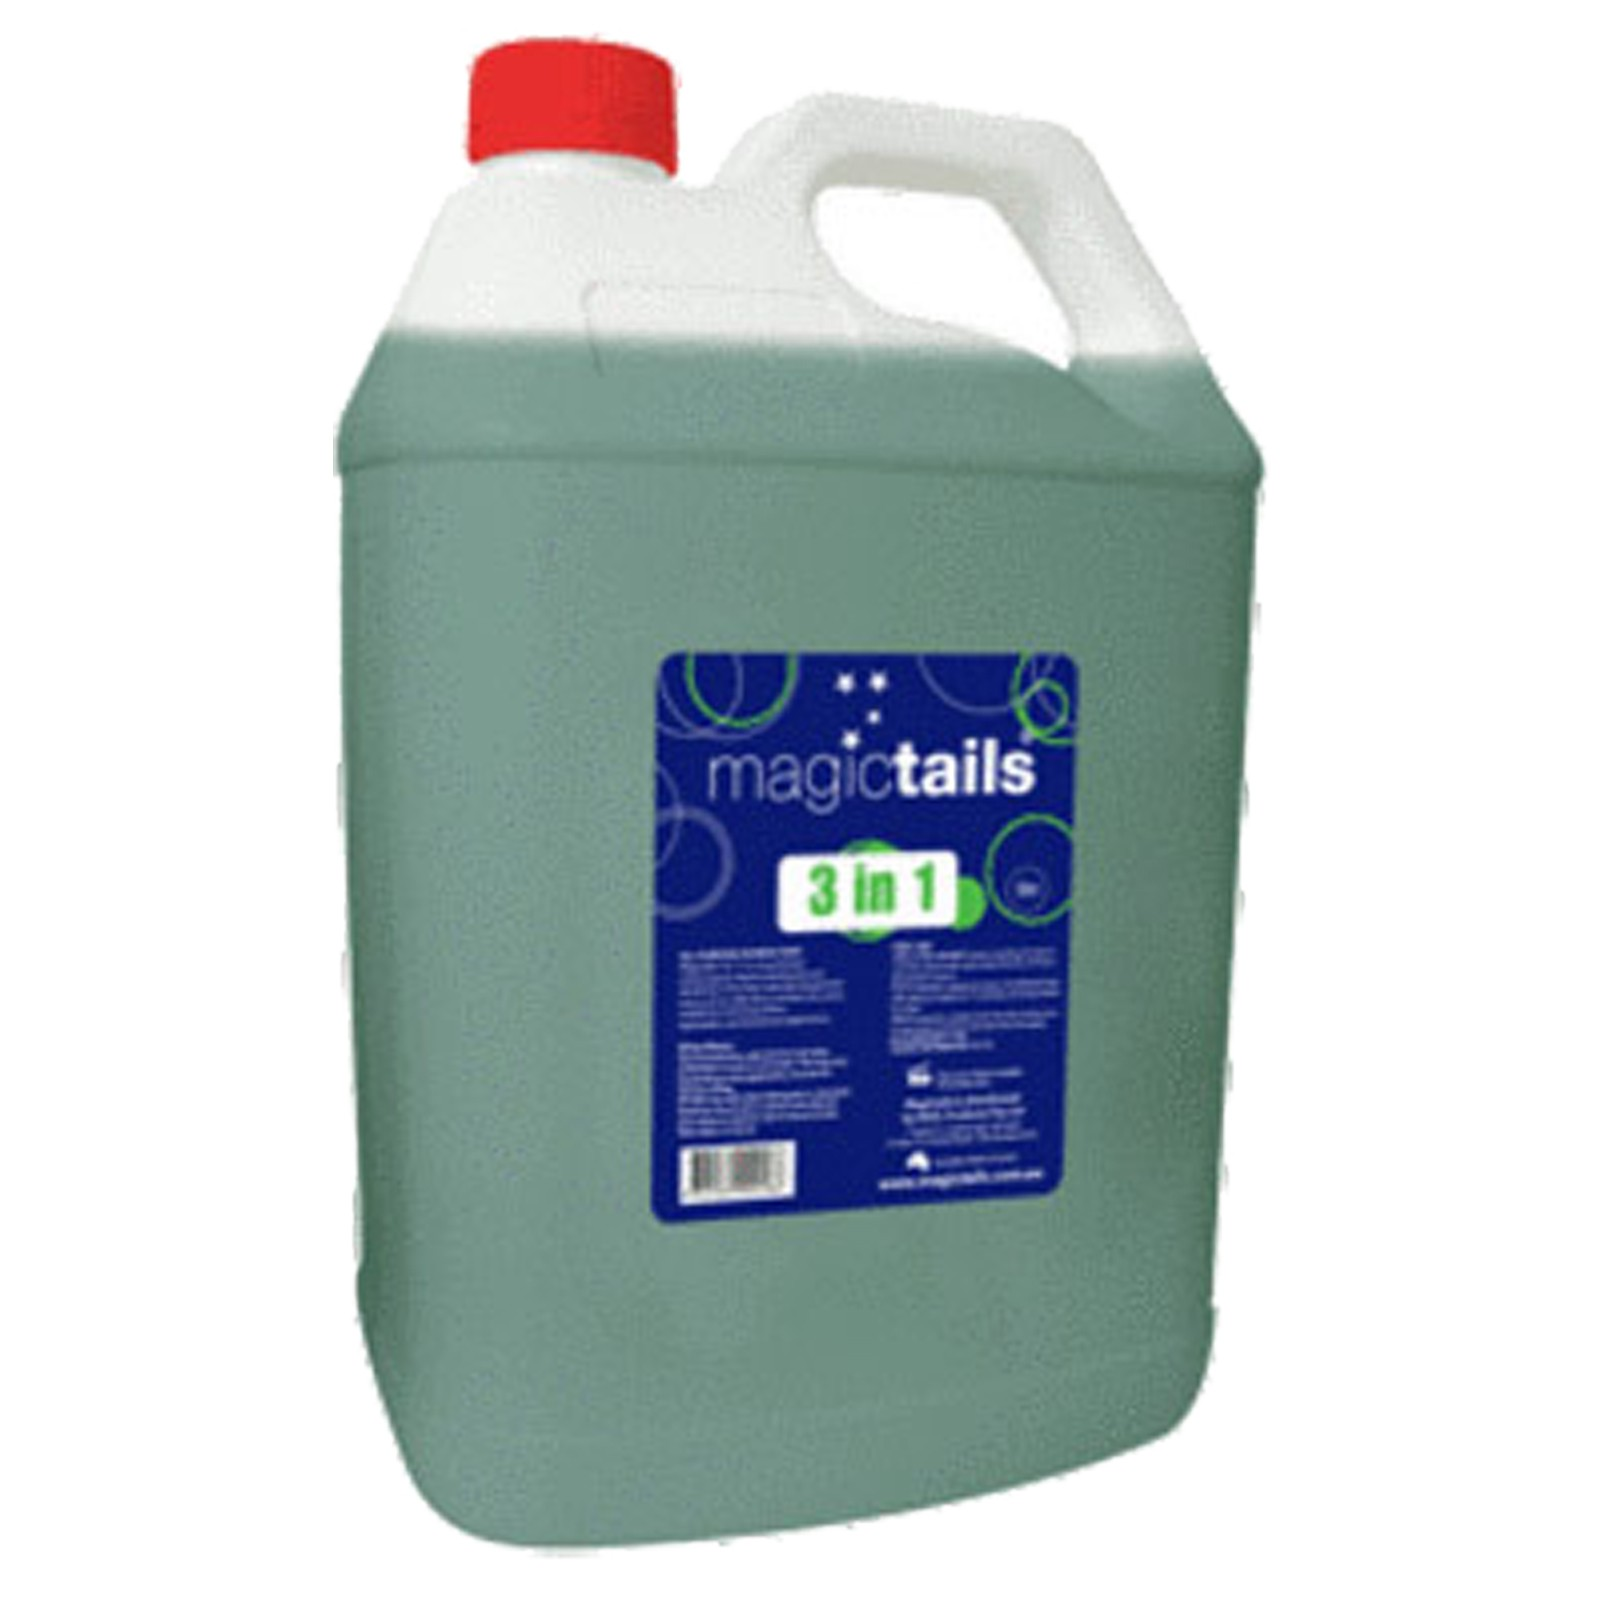 MagicTails 3 In 1 Disinfectant 5 Litre